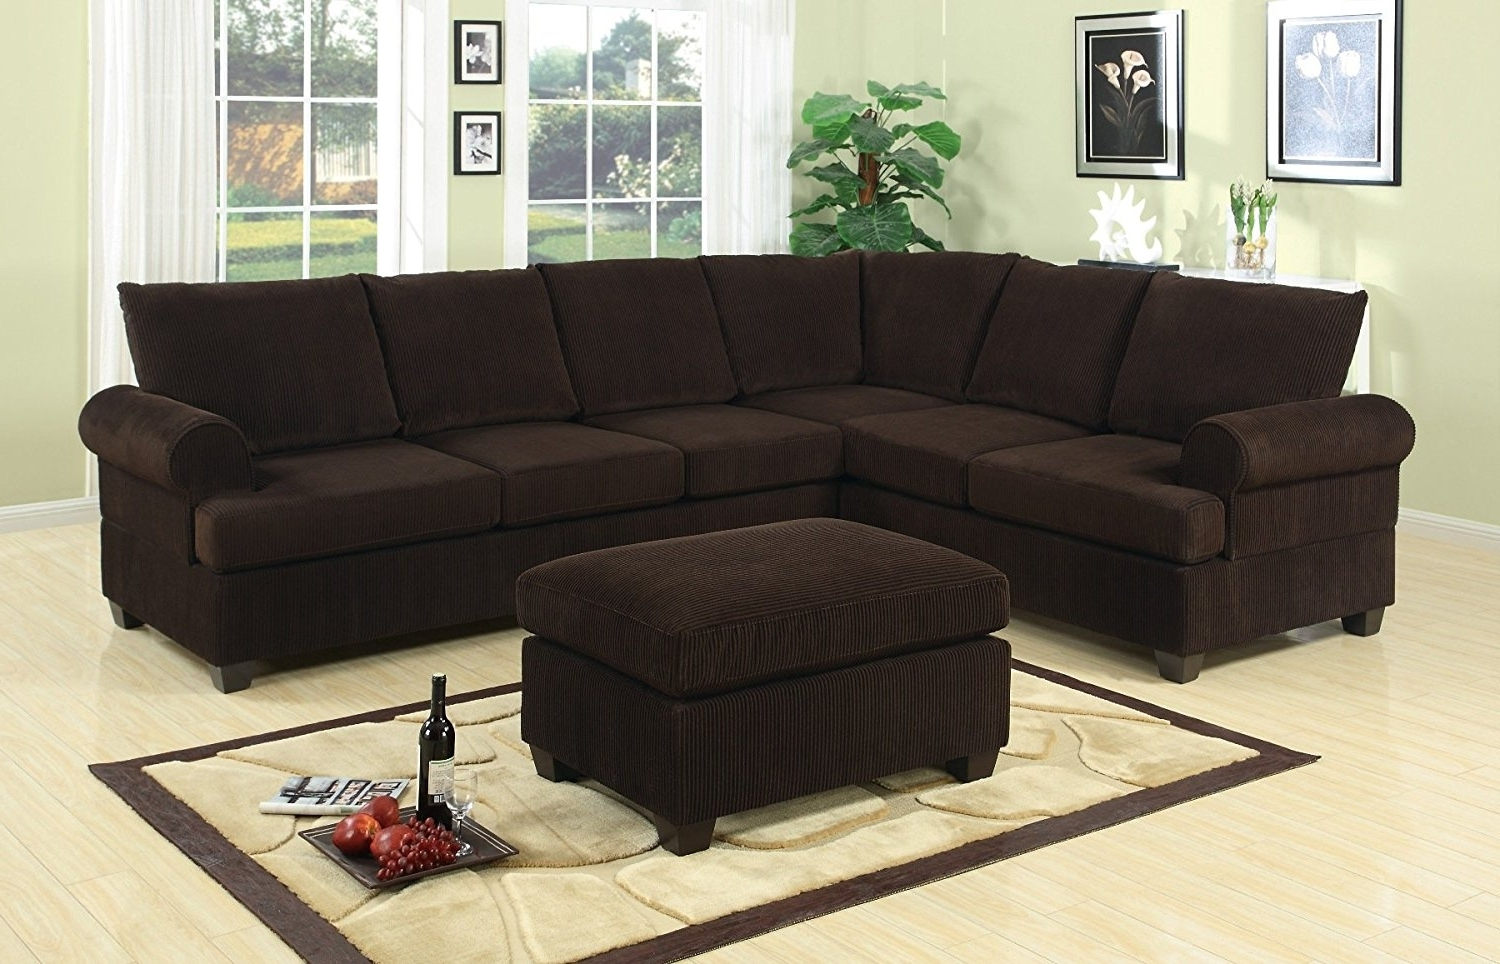 Most Popular Sectional Sofas Jacksonville Fl – Home And Textiles Inside Jacksonville Florida Sectional Sofas (View 9 of 15)